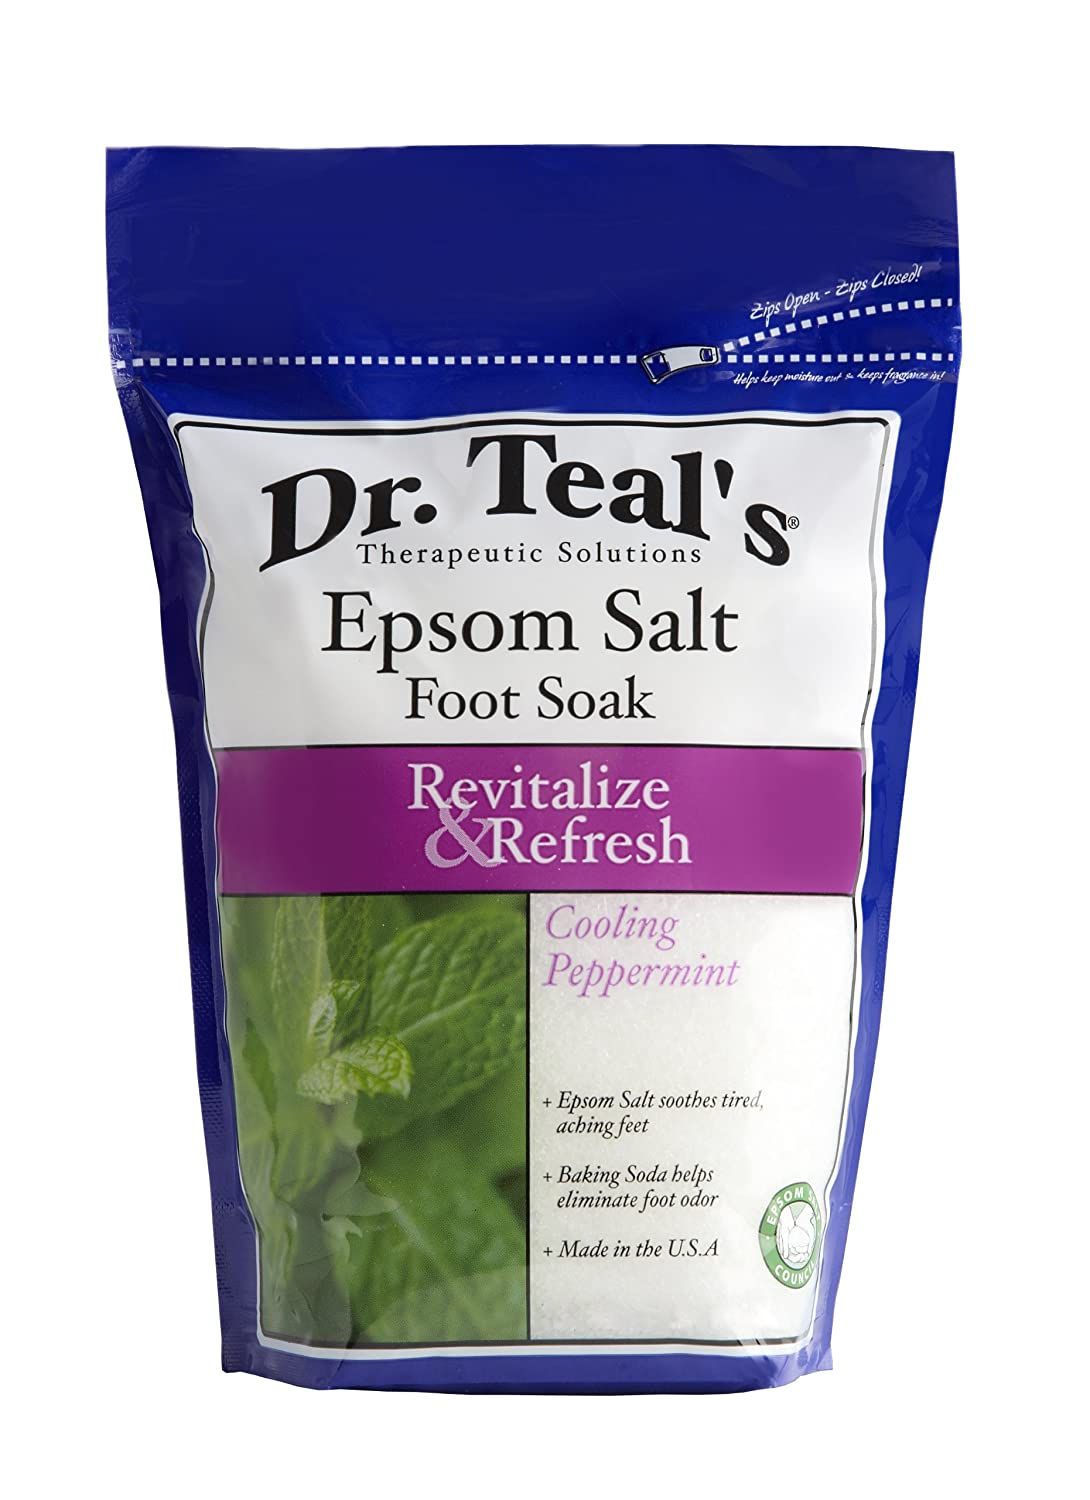 Dr. Teal's Epsom Salt Foot Soak, Cooling Peppermint, 32 Ounce Advanced Beauty Systems NA